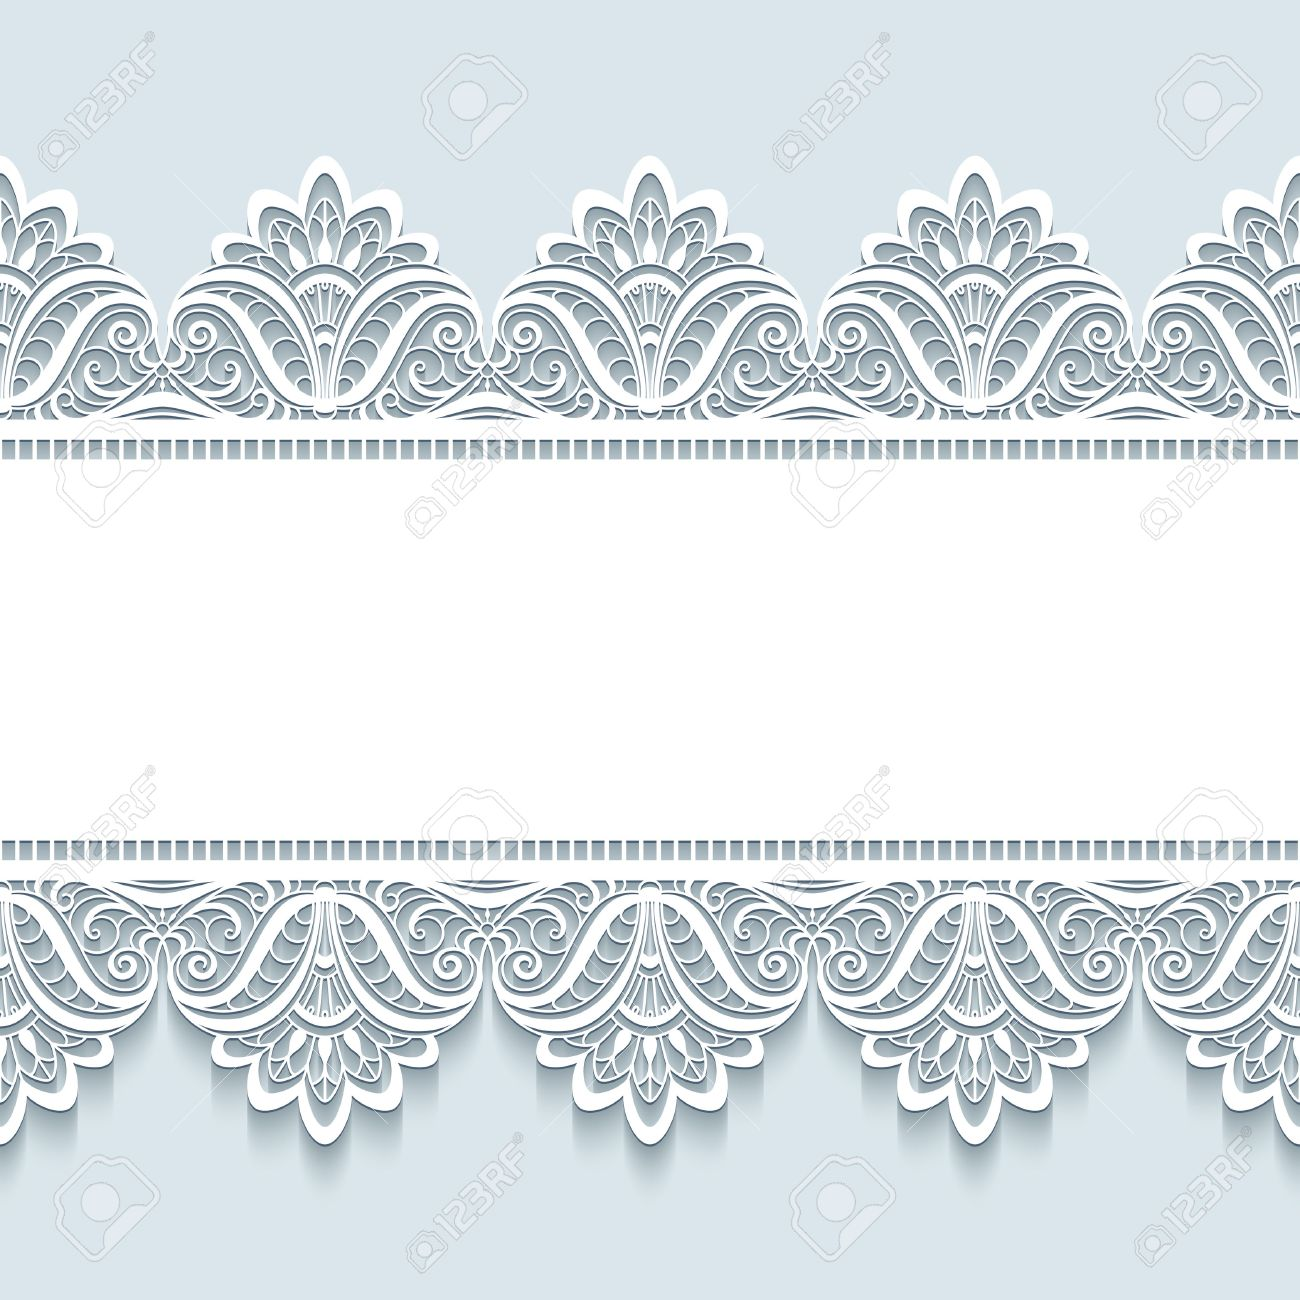 Vintage frame with seamless lace border ornament, merry Christmas background, elegant greeting card or invitation template - 48900967